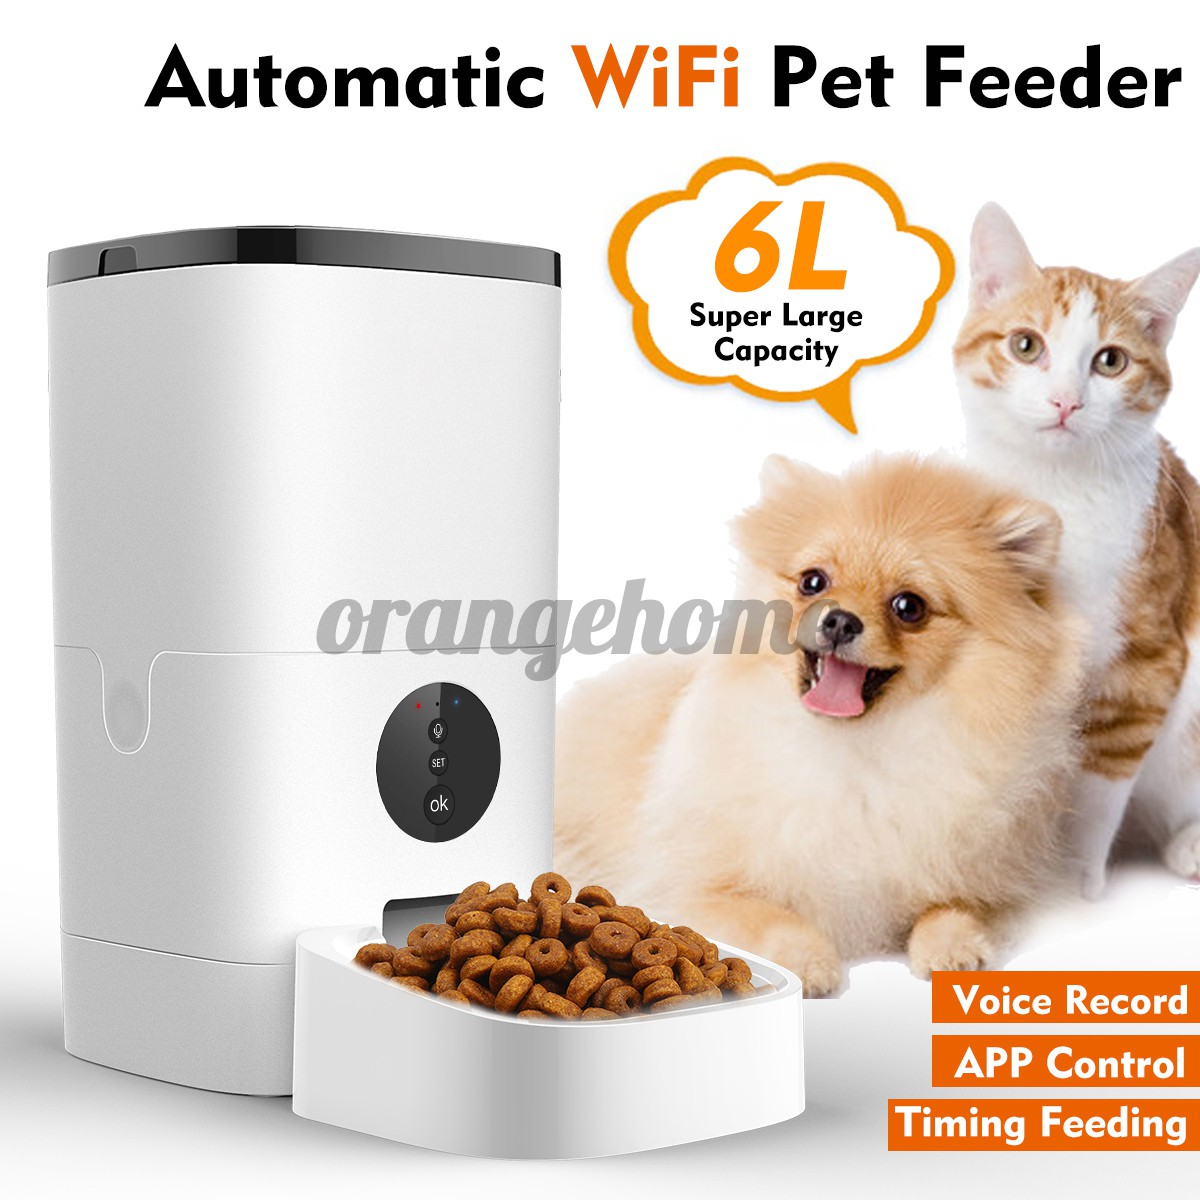 Wifi Button Version 6l Automatic Pet Feeder App Control Voice Recording Timing Feeding Food Dispenser For Cat Dog Shopee Brasil